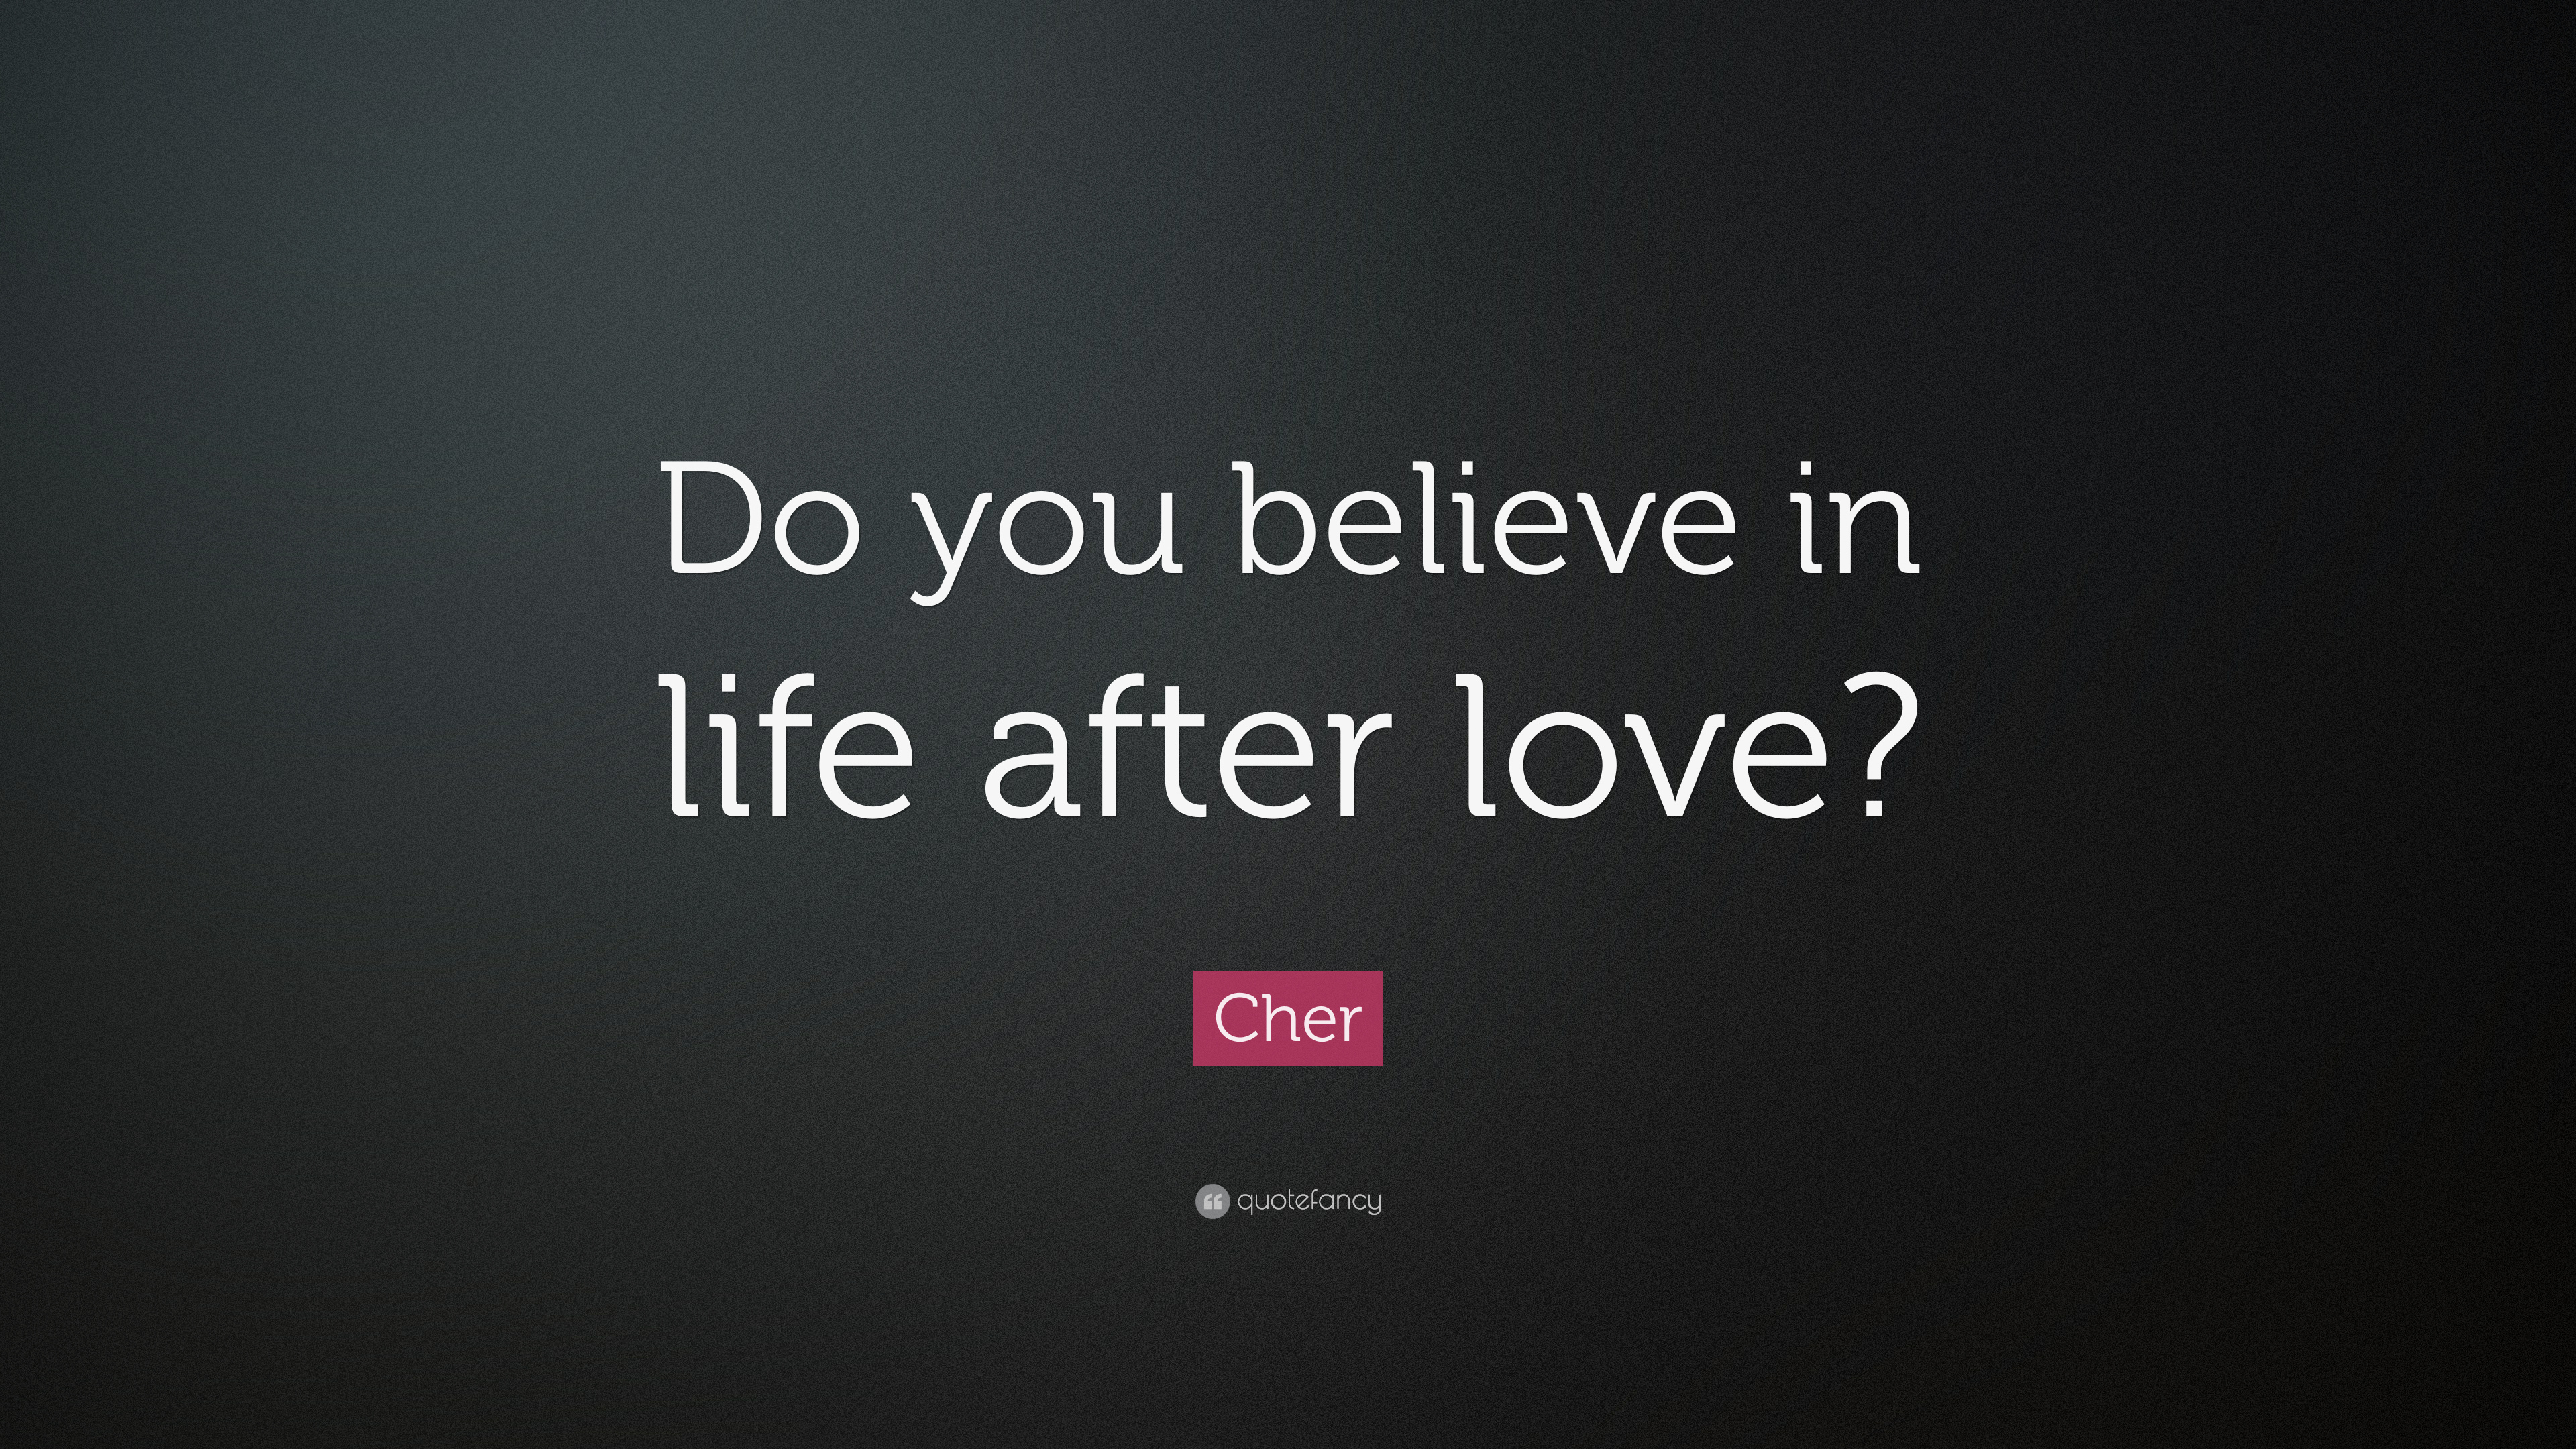 do you believe love after life